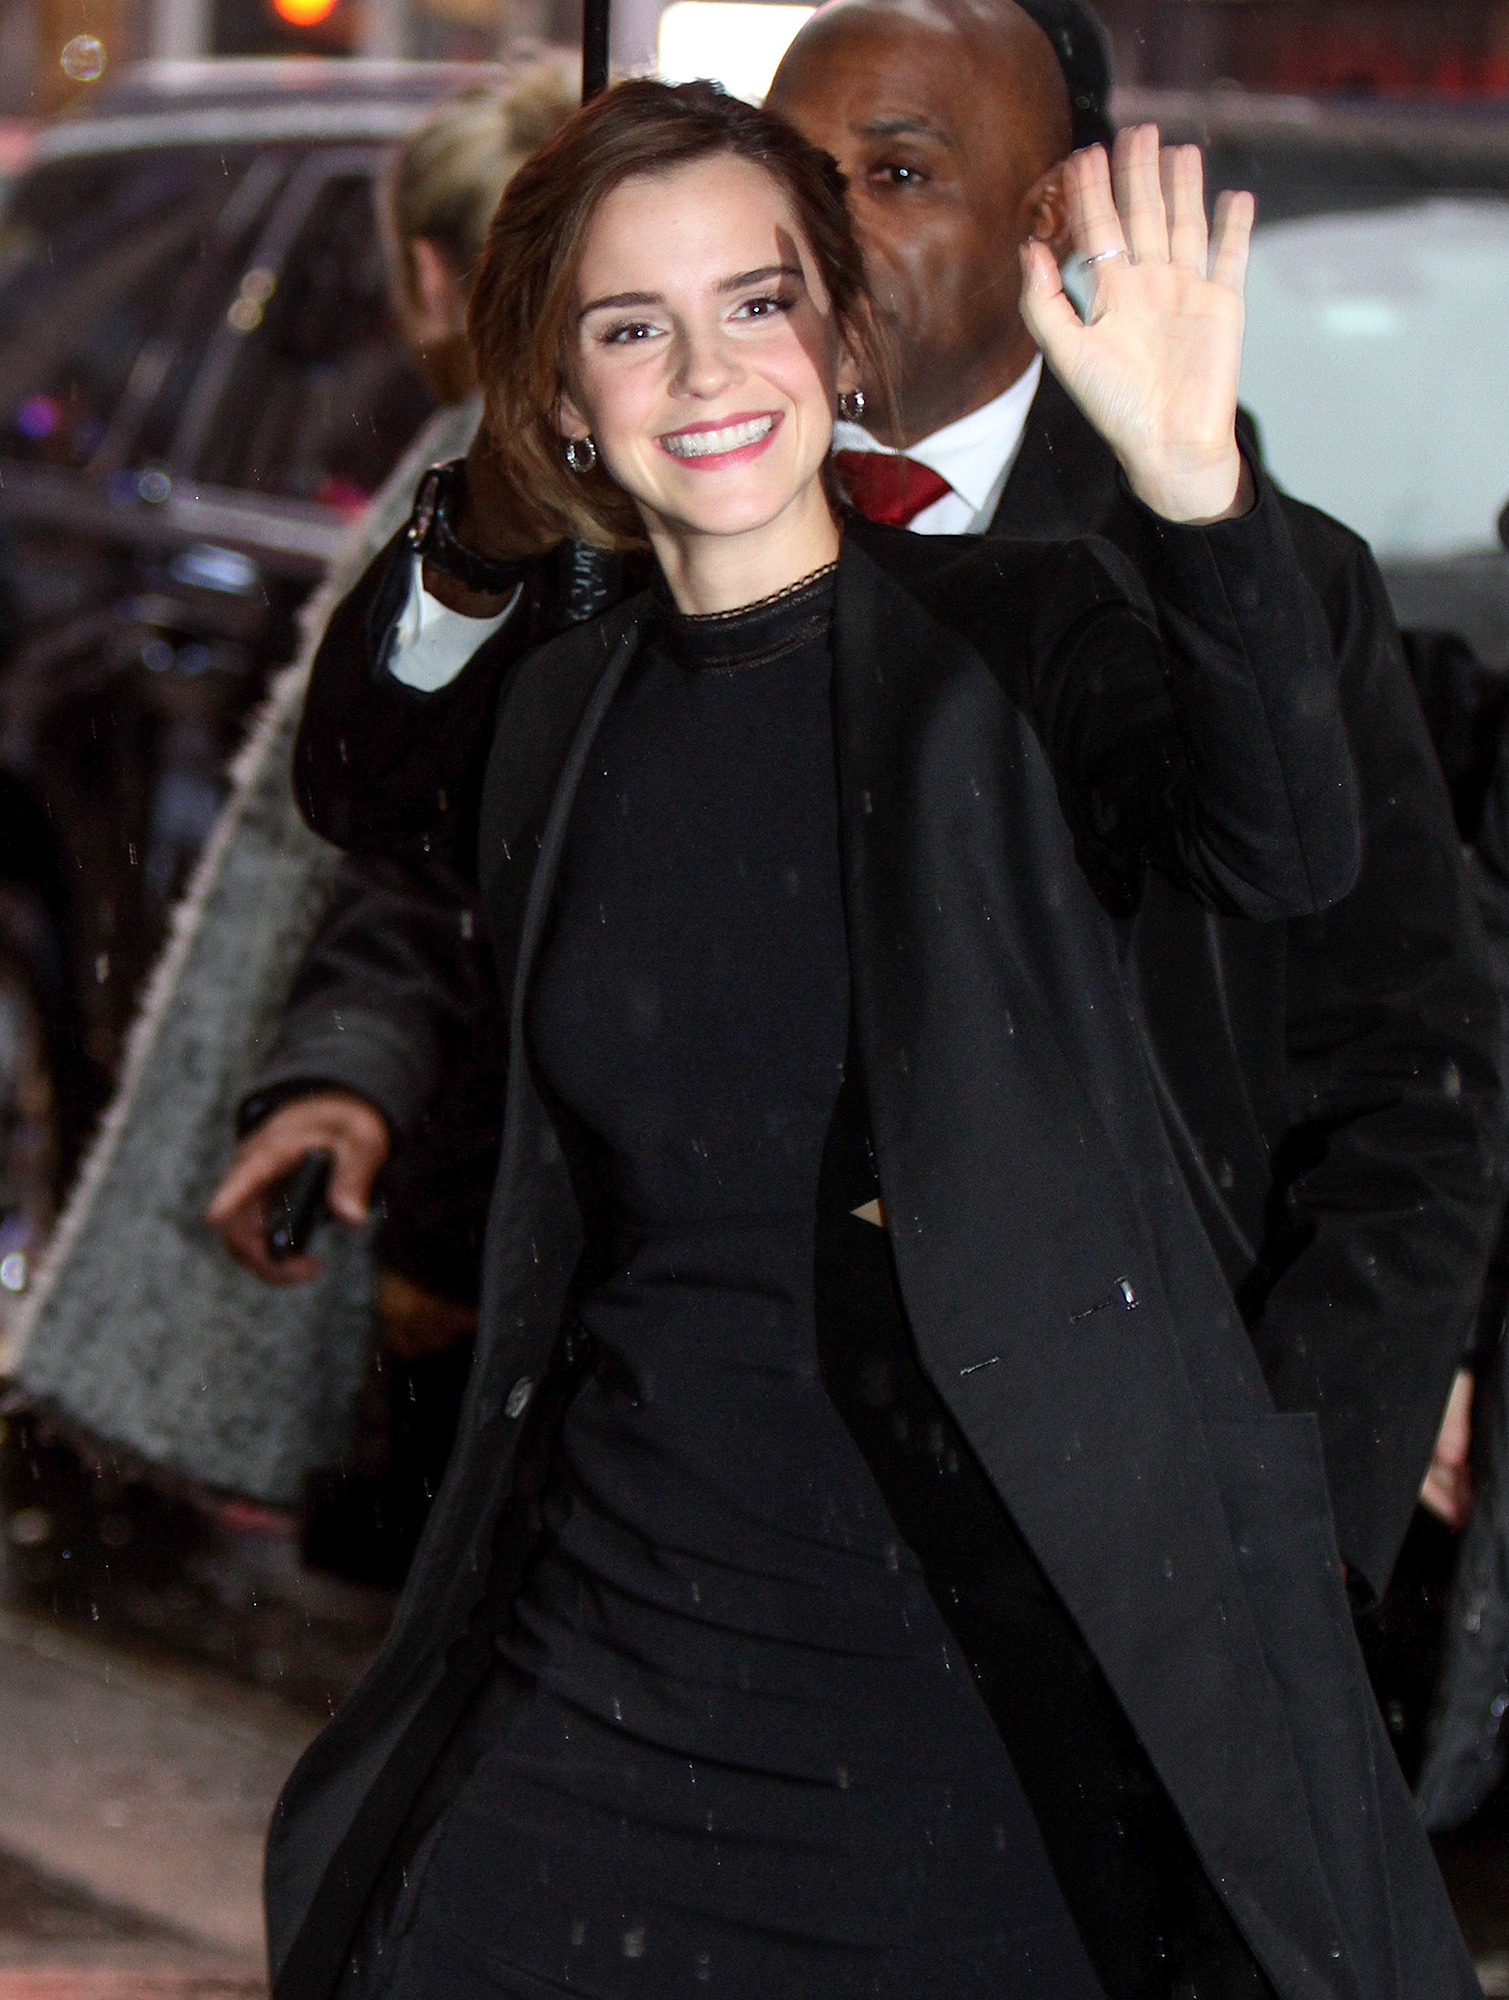 Emma Watson pictured arriving to promote her new Disney movie 'Beauty and The Beast' at the 'Good Morning America' show in Times Square, Manhattan